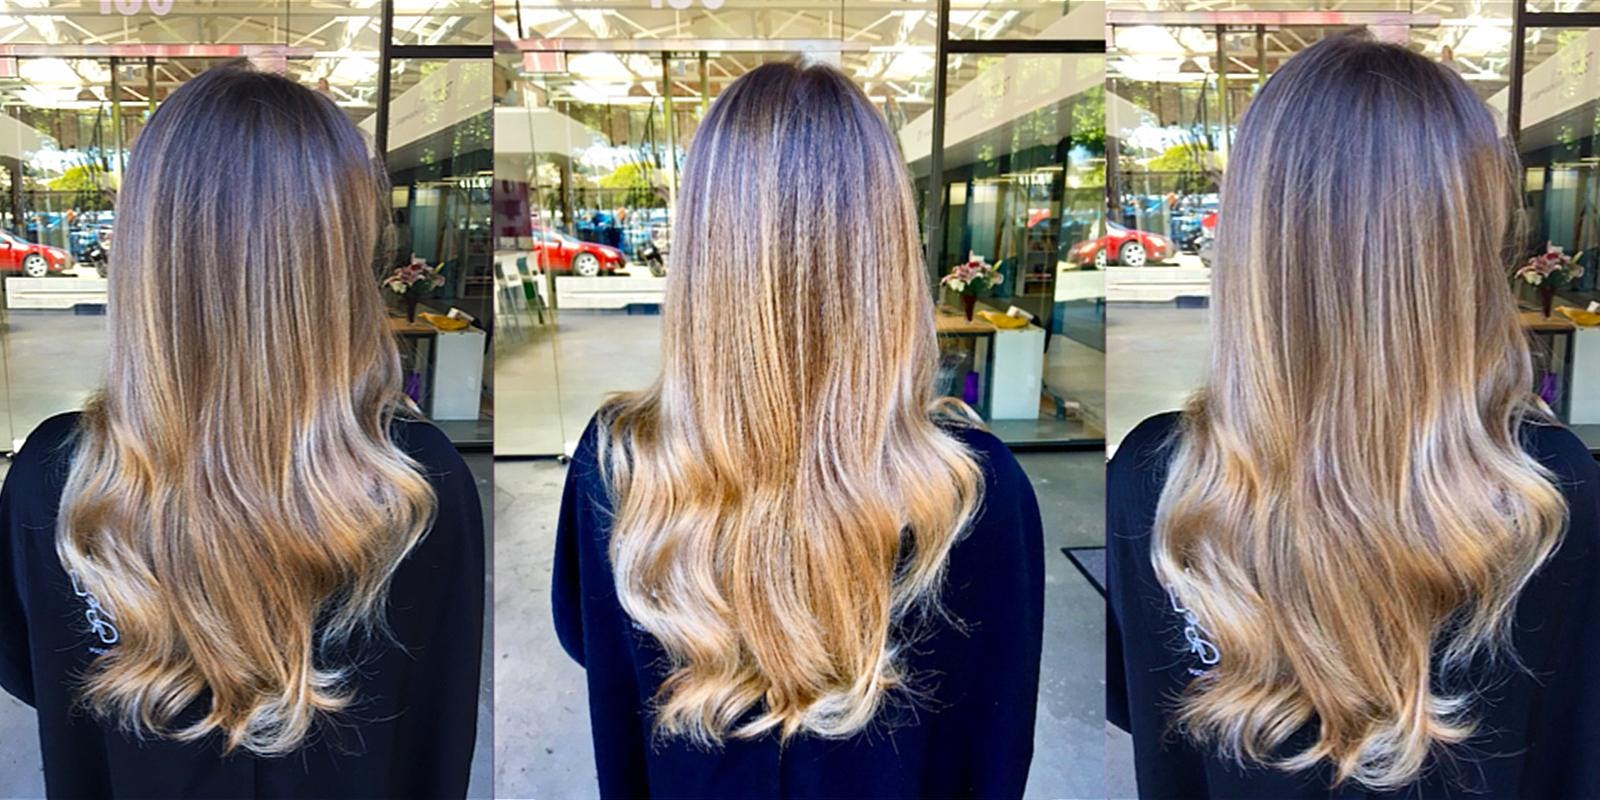 Balayage vs. Hair Foils the Great Highlight Debate